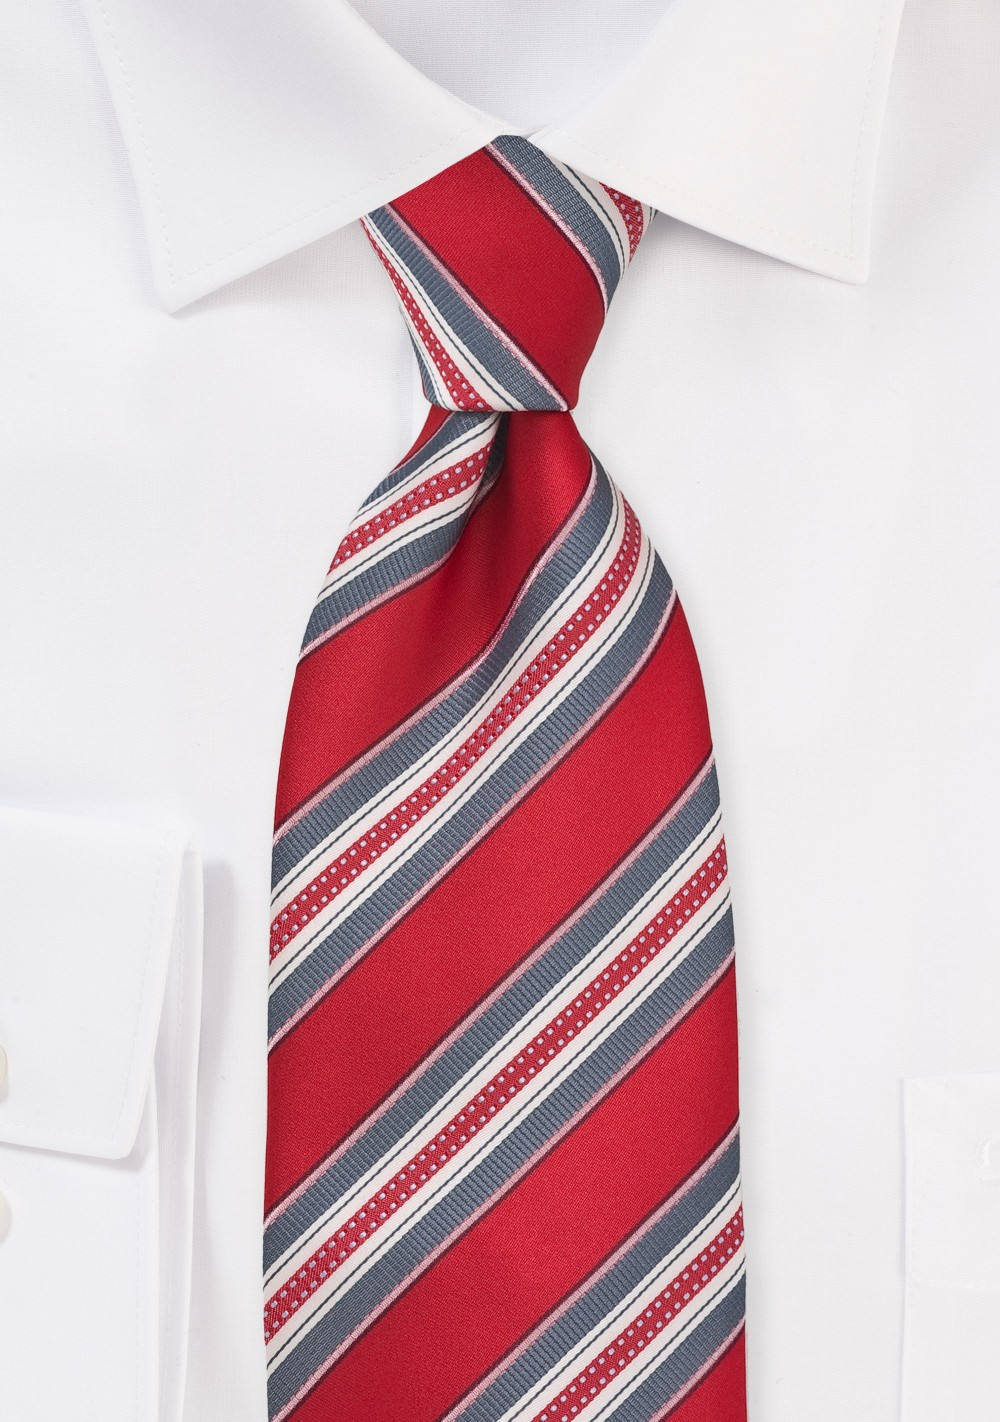 Striped Tie in Red, Grey and Ivory